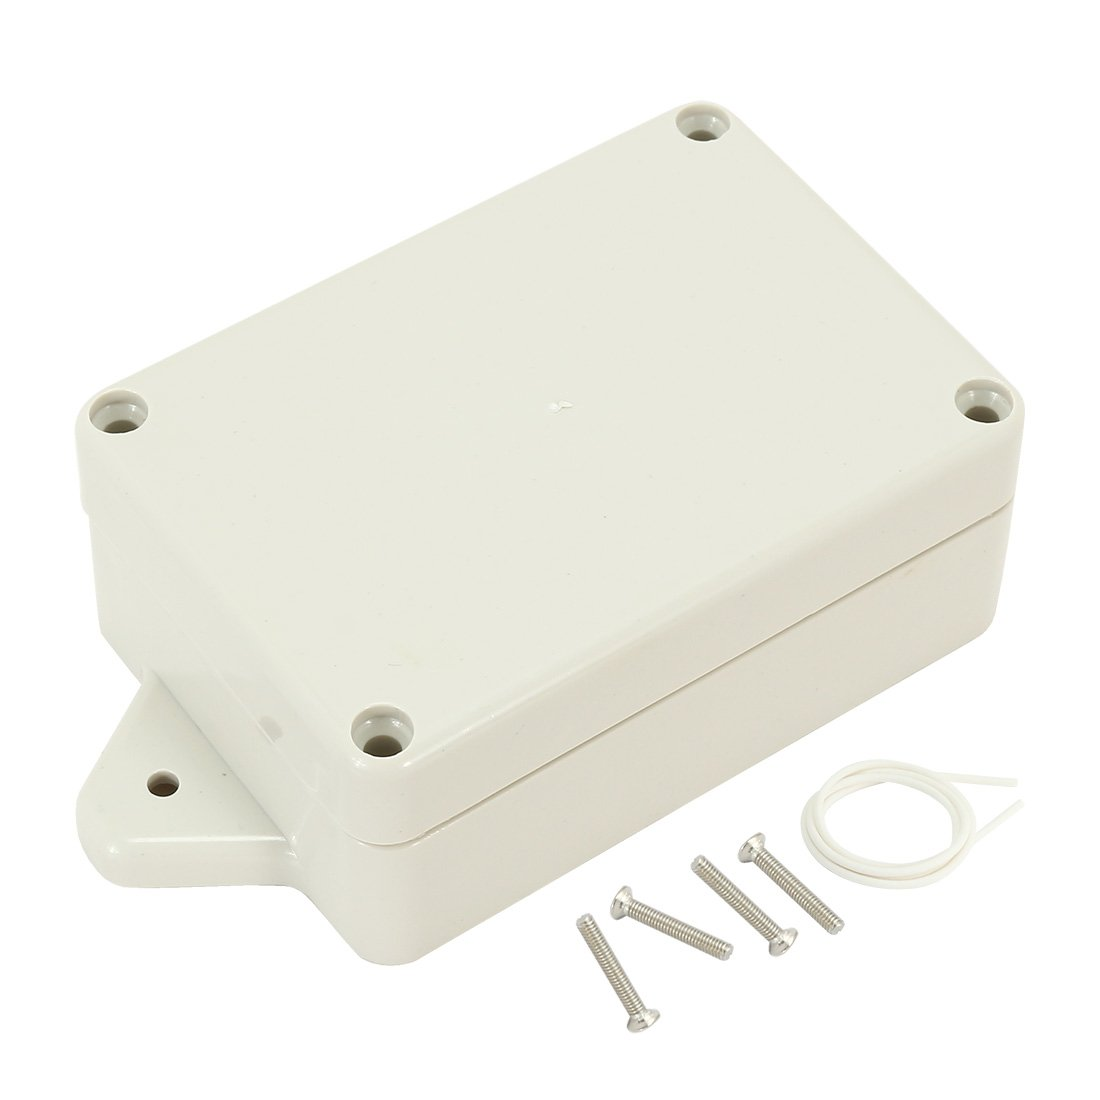 uxcell 3.27x2.28x1.3(83mmx58mmx33mm) ABS Junction Box Universal Electric Project Enclosure w Fixed Ear a17031600ux1100